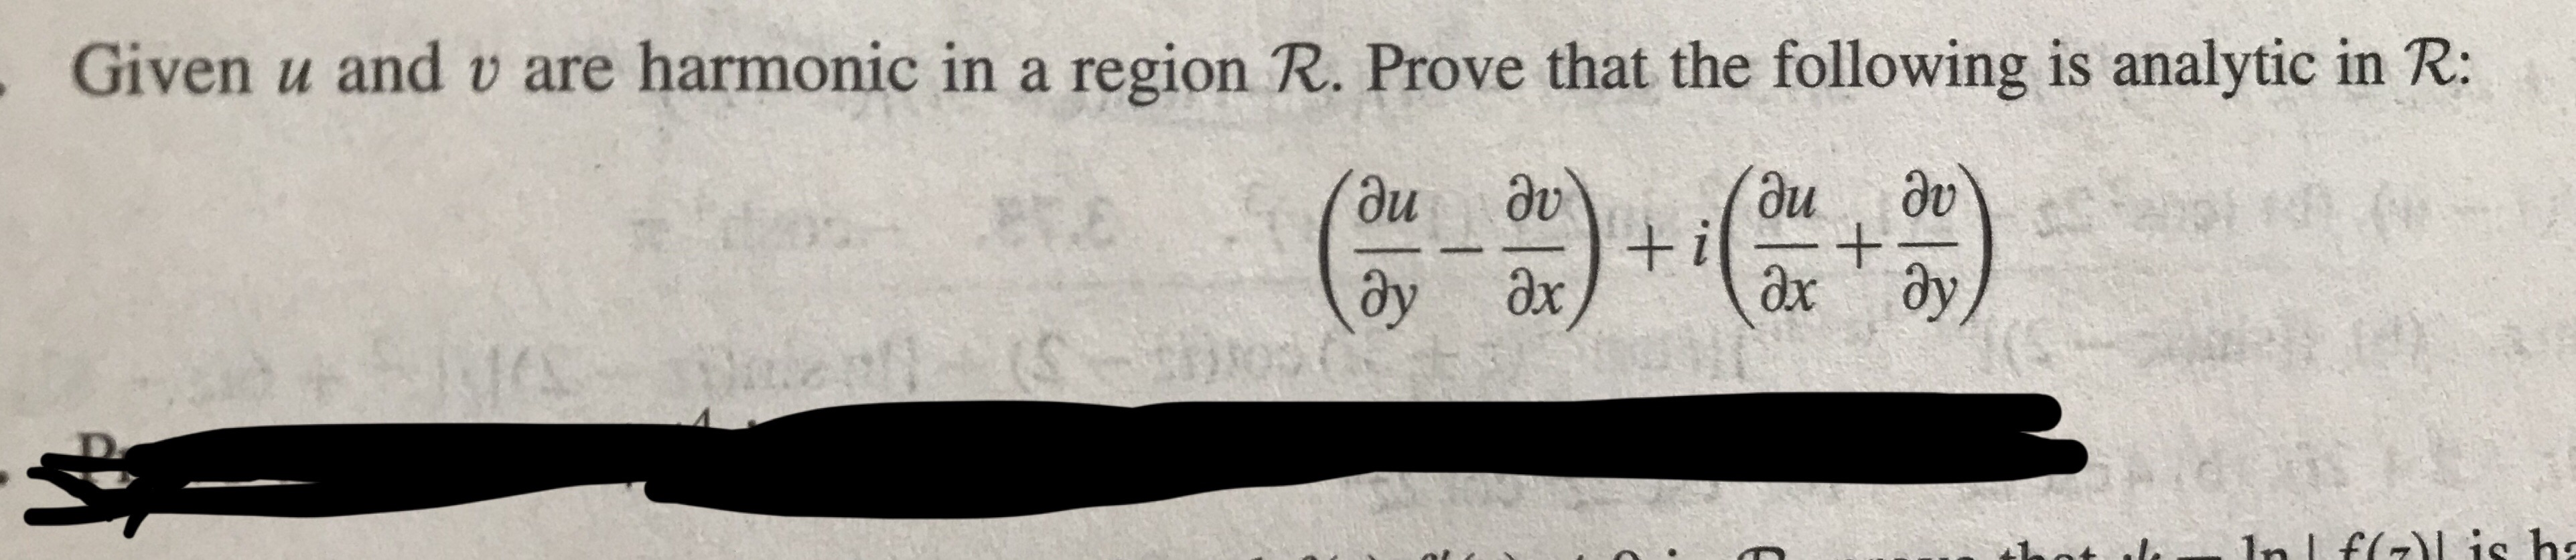 Given u and v are harmonic in a region R. Prove that the following is analytic in R: ay ar